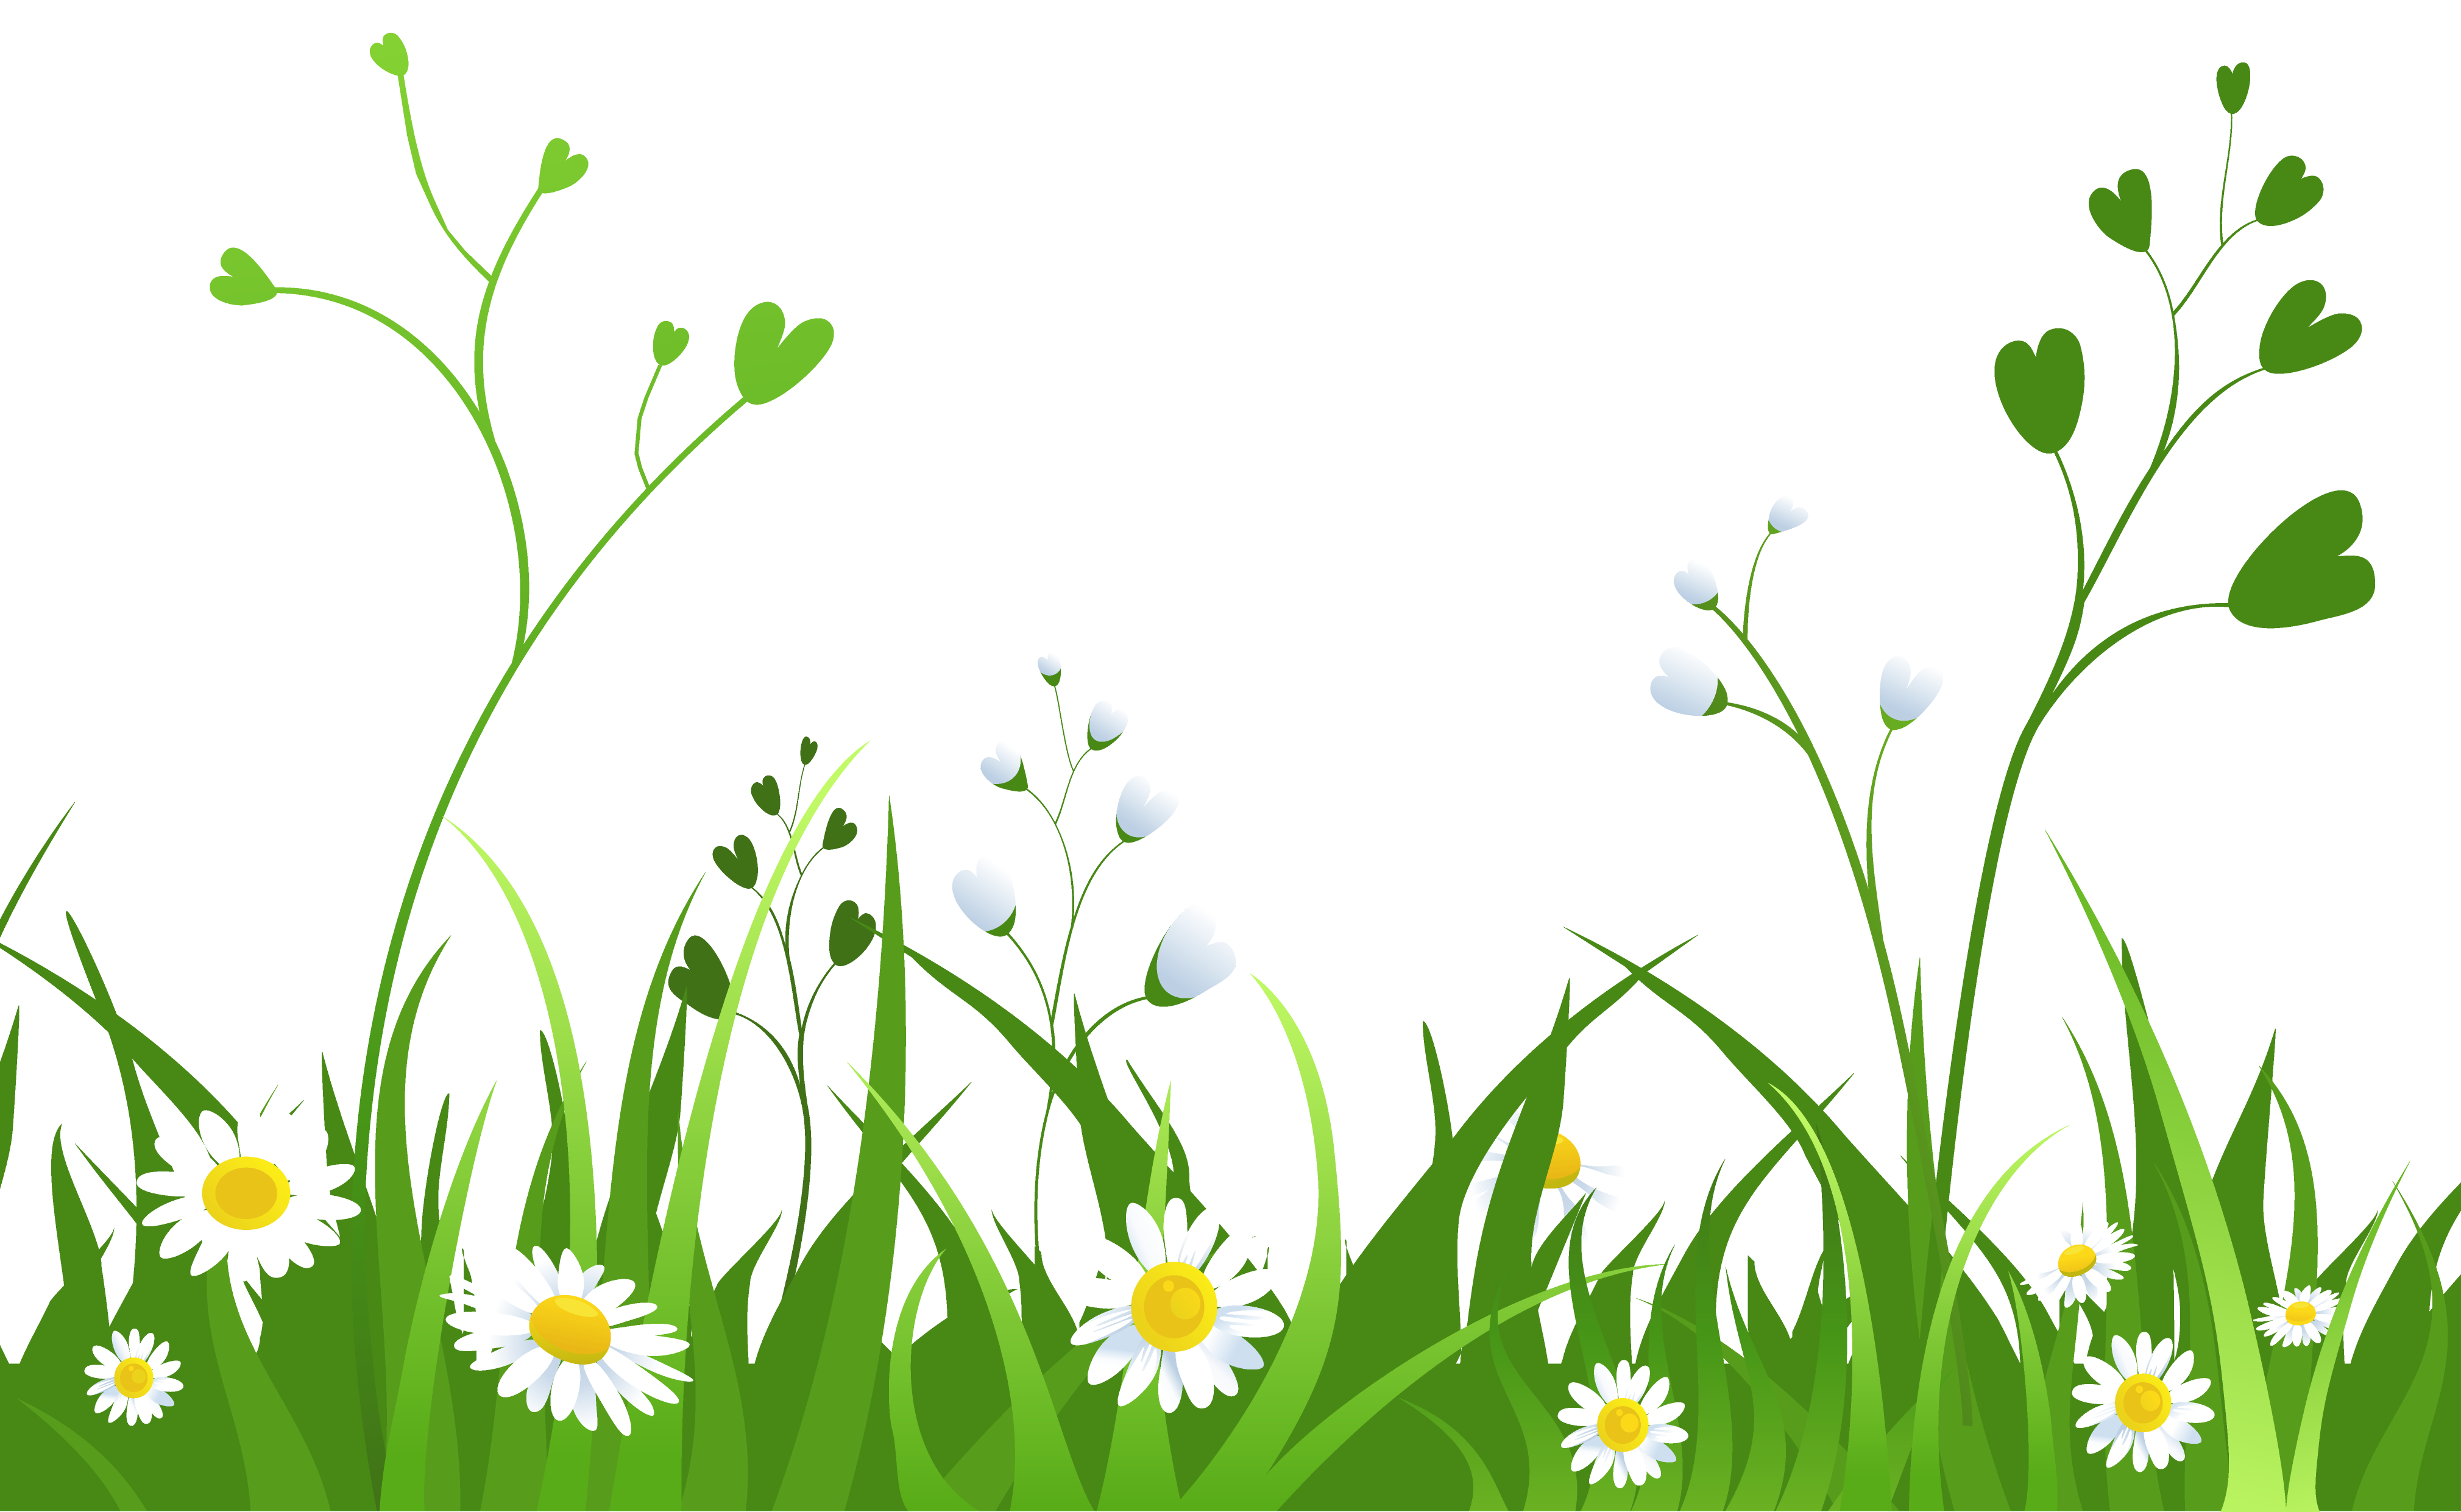 grass clip art free clipart panda free clipart images - HD 4039×2482